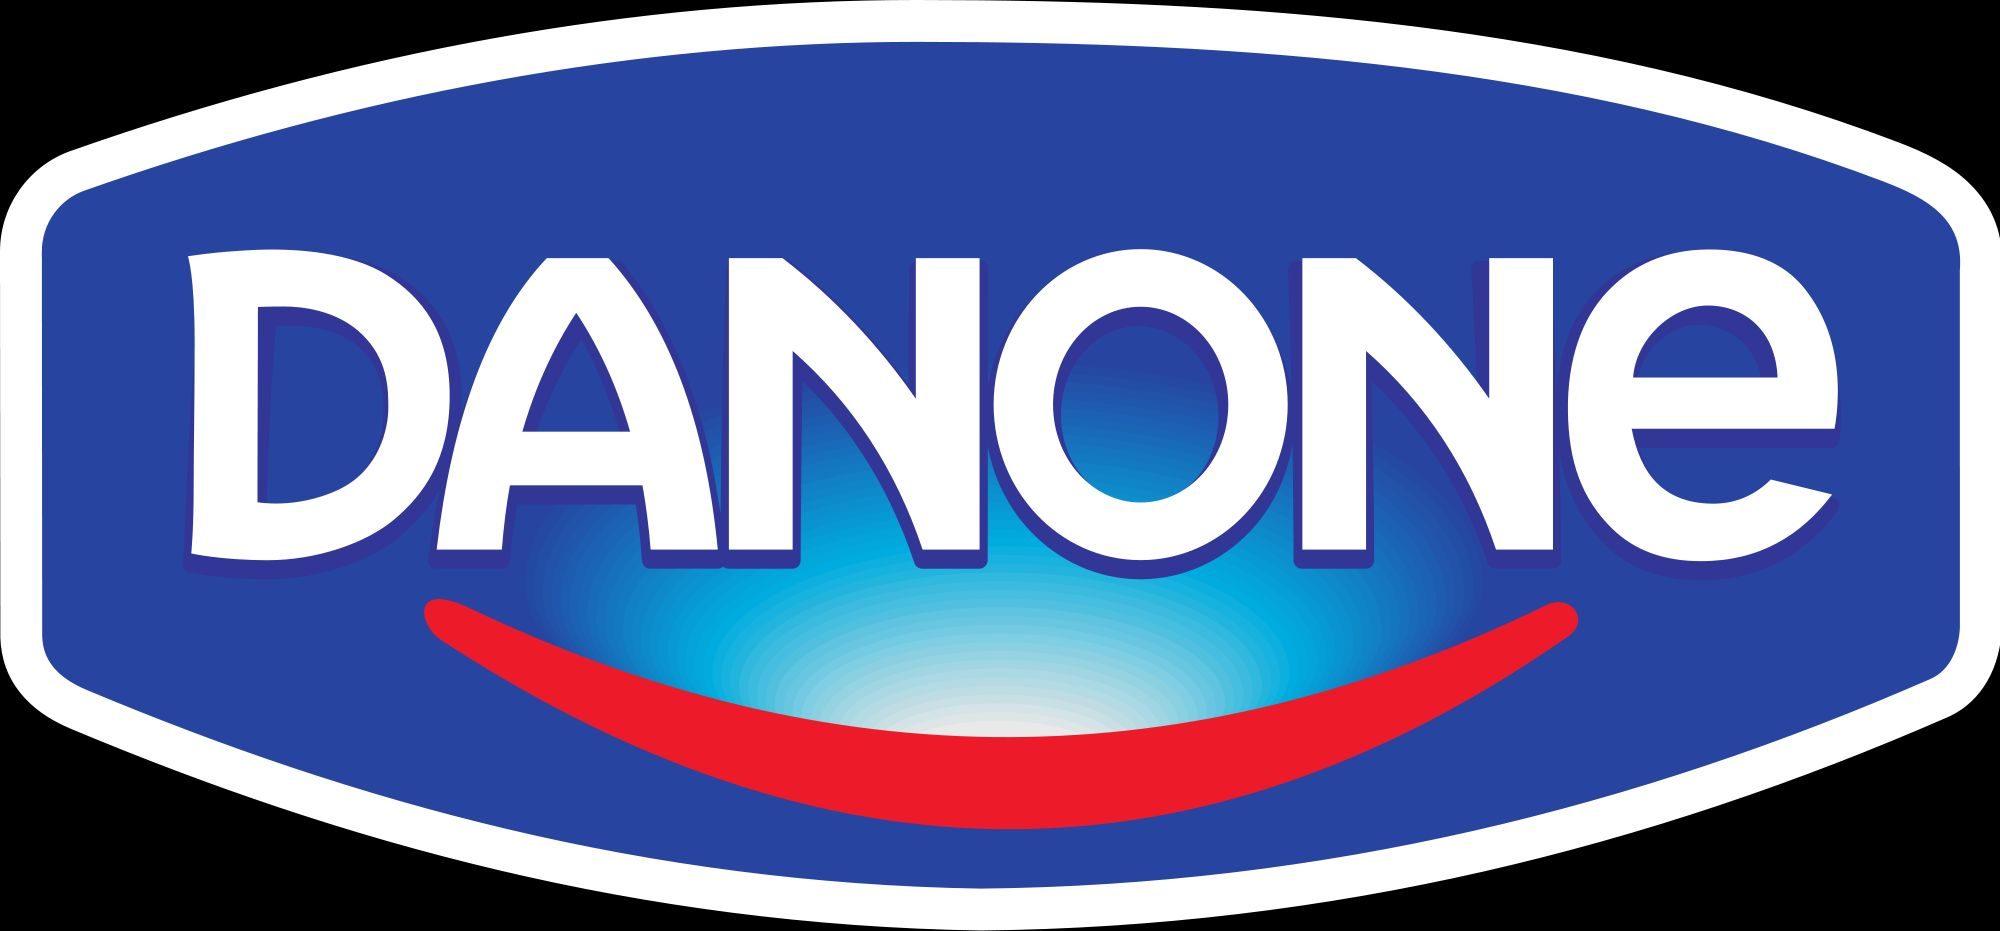 Answer: Danone (Image source: Wikimedia Commons)